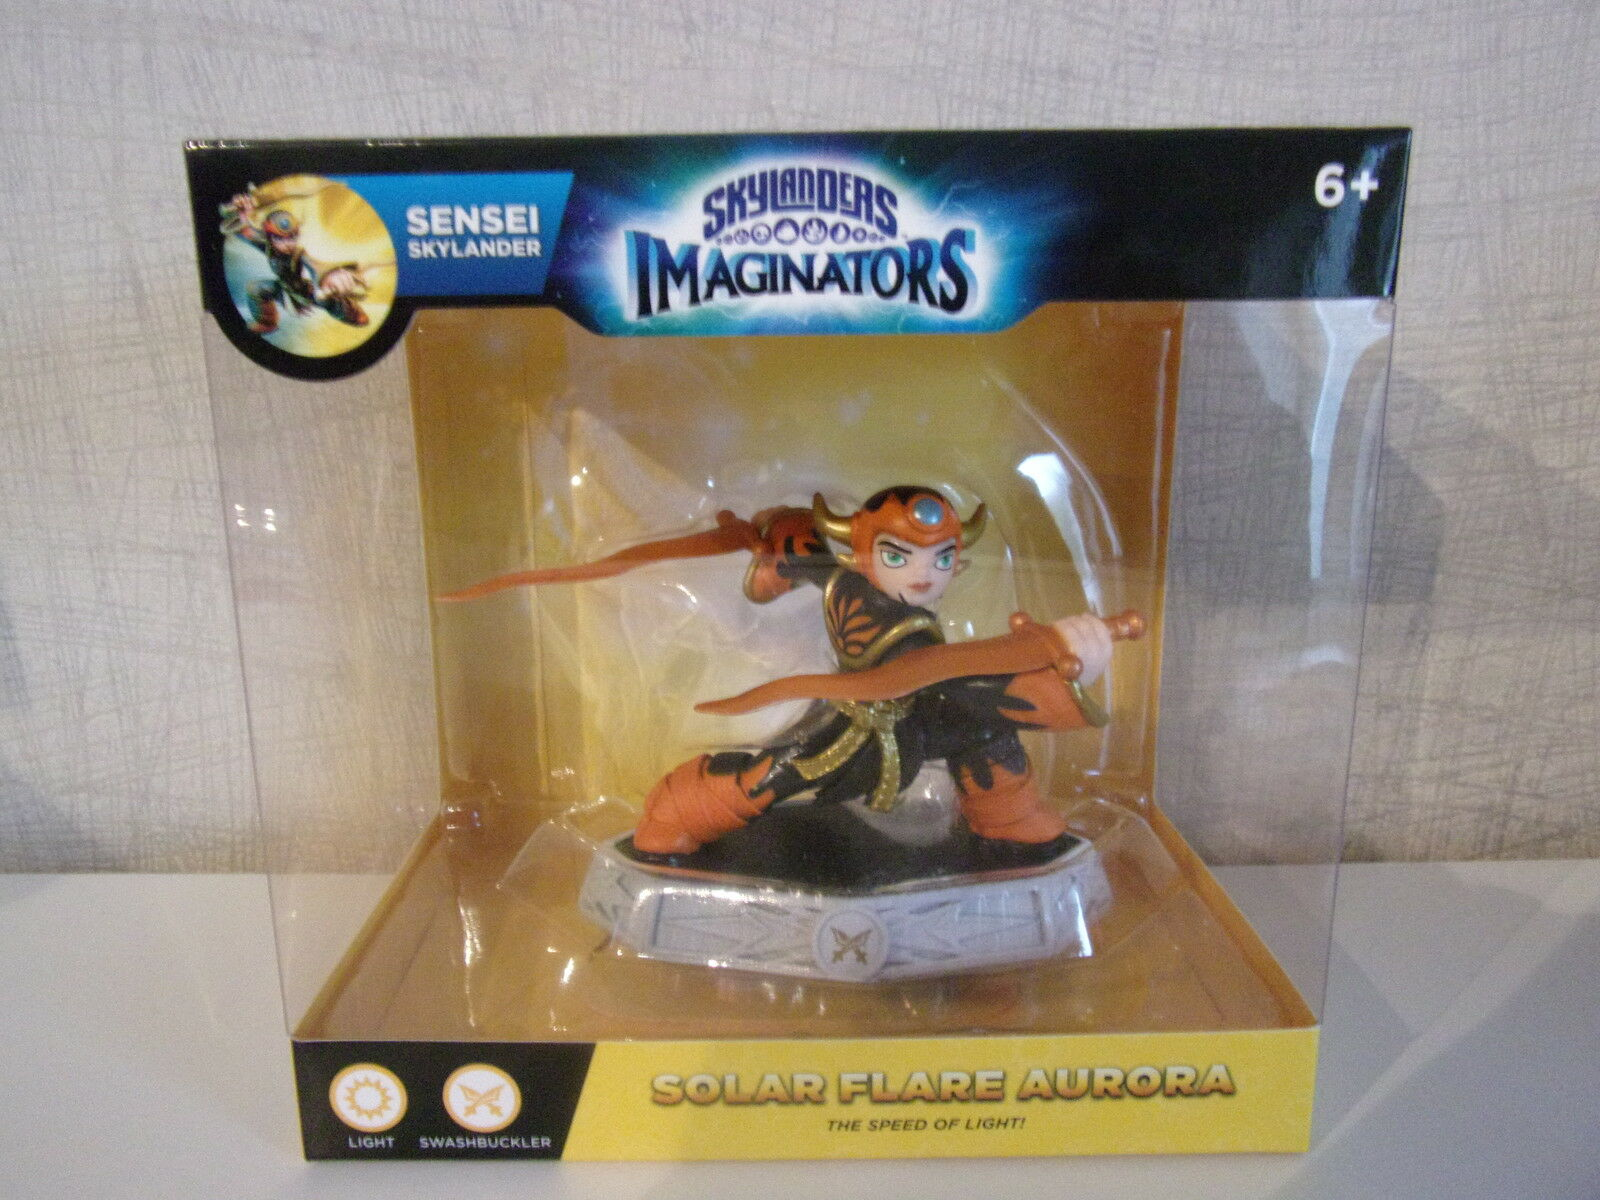 Full range available here. Skylanders Imaginators Sensei figure